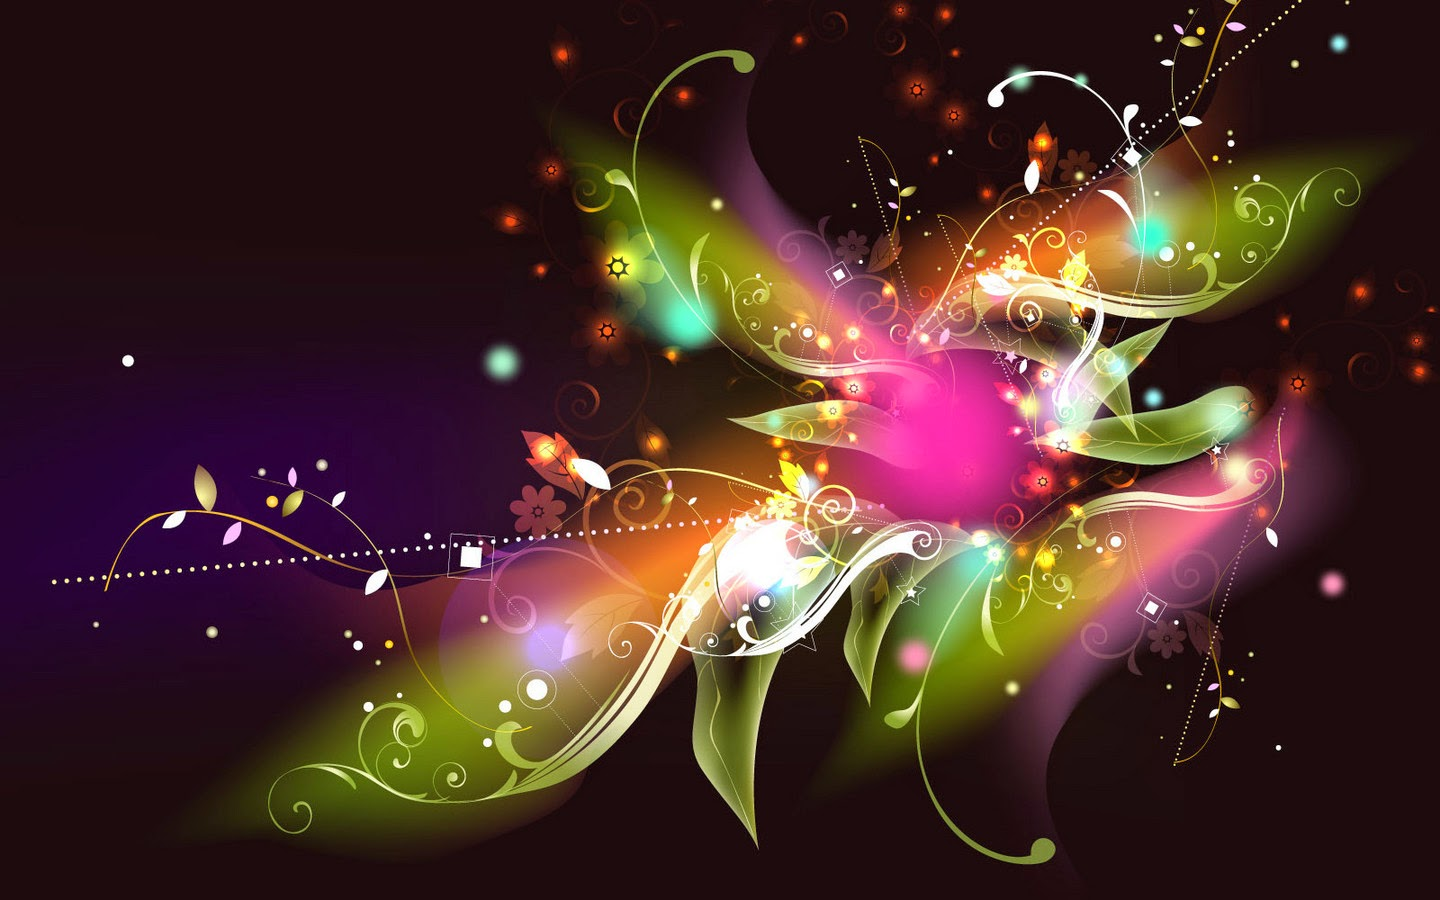 3d wallpapers free download for windows 8